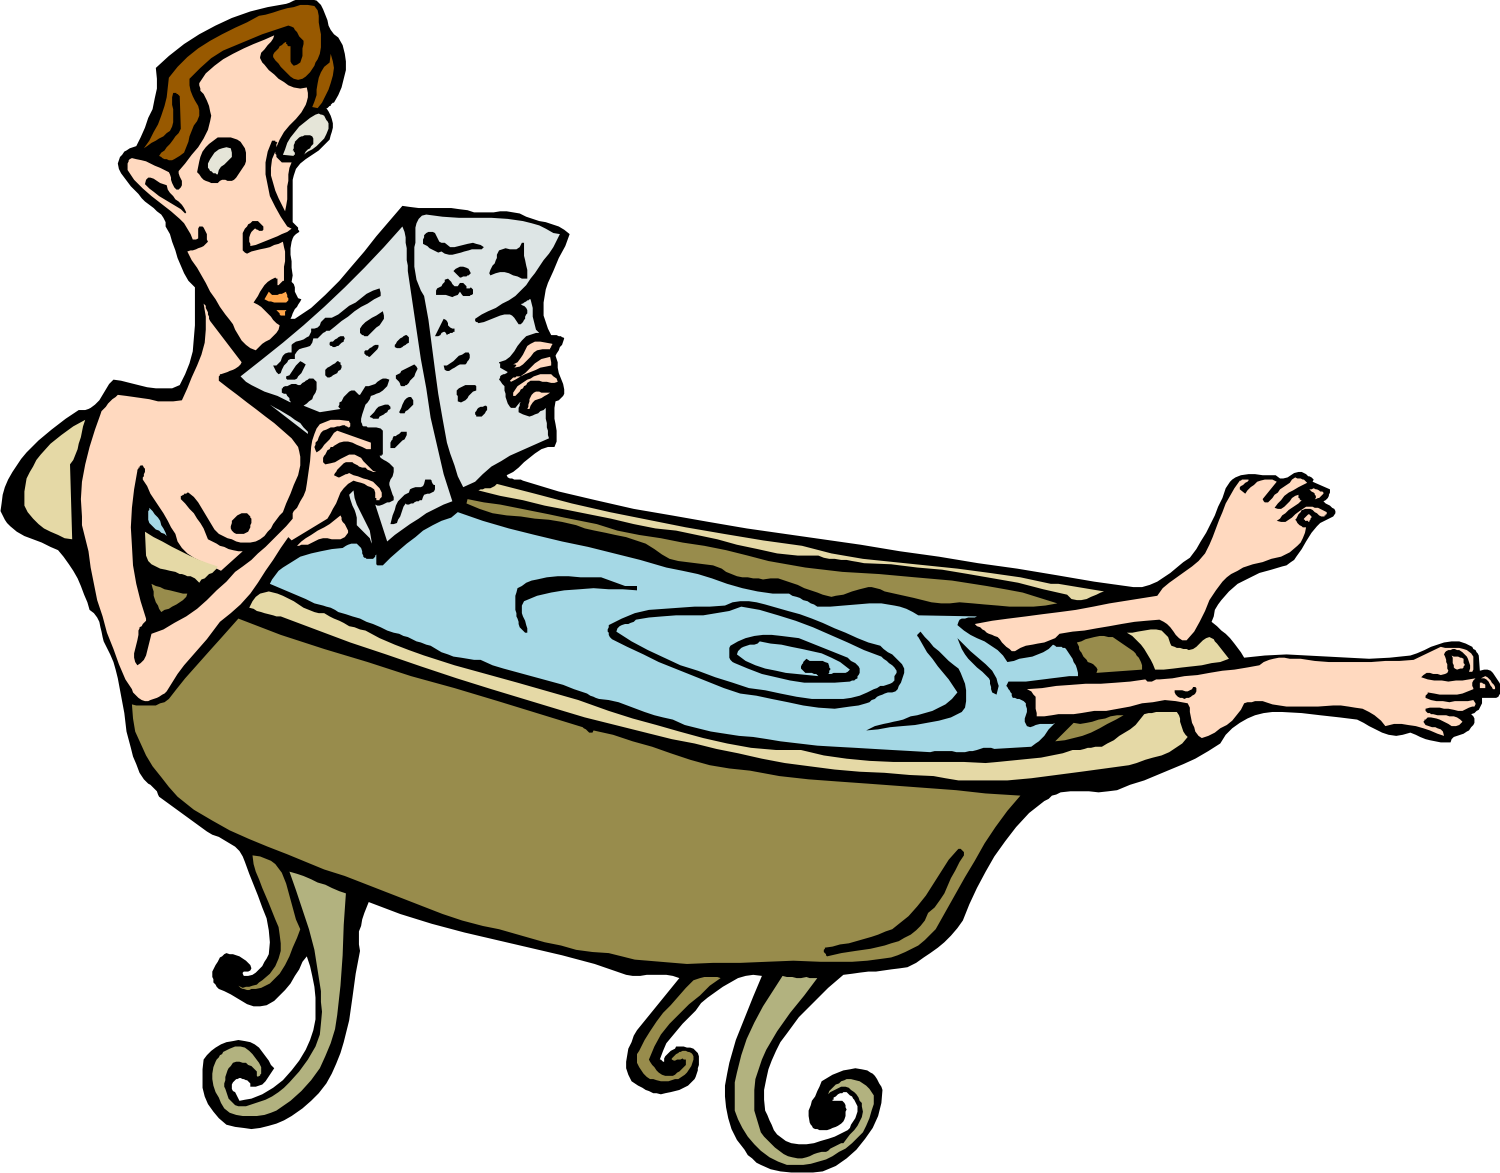 National Read in the Bathtub Day | oldspouse